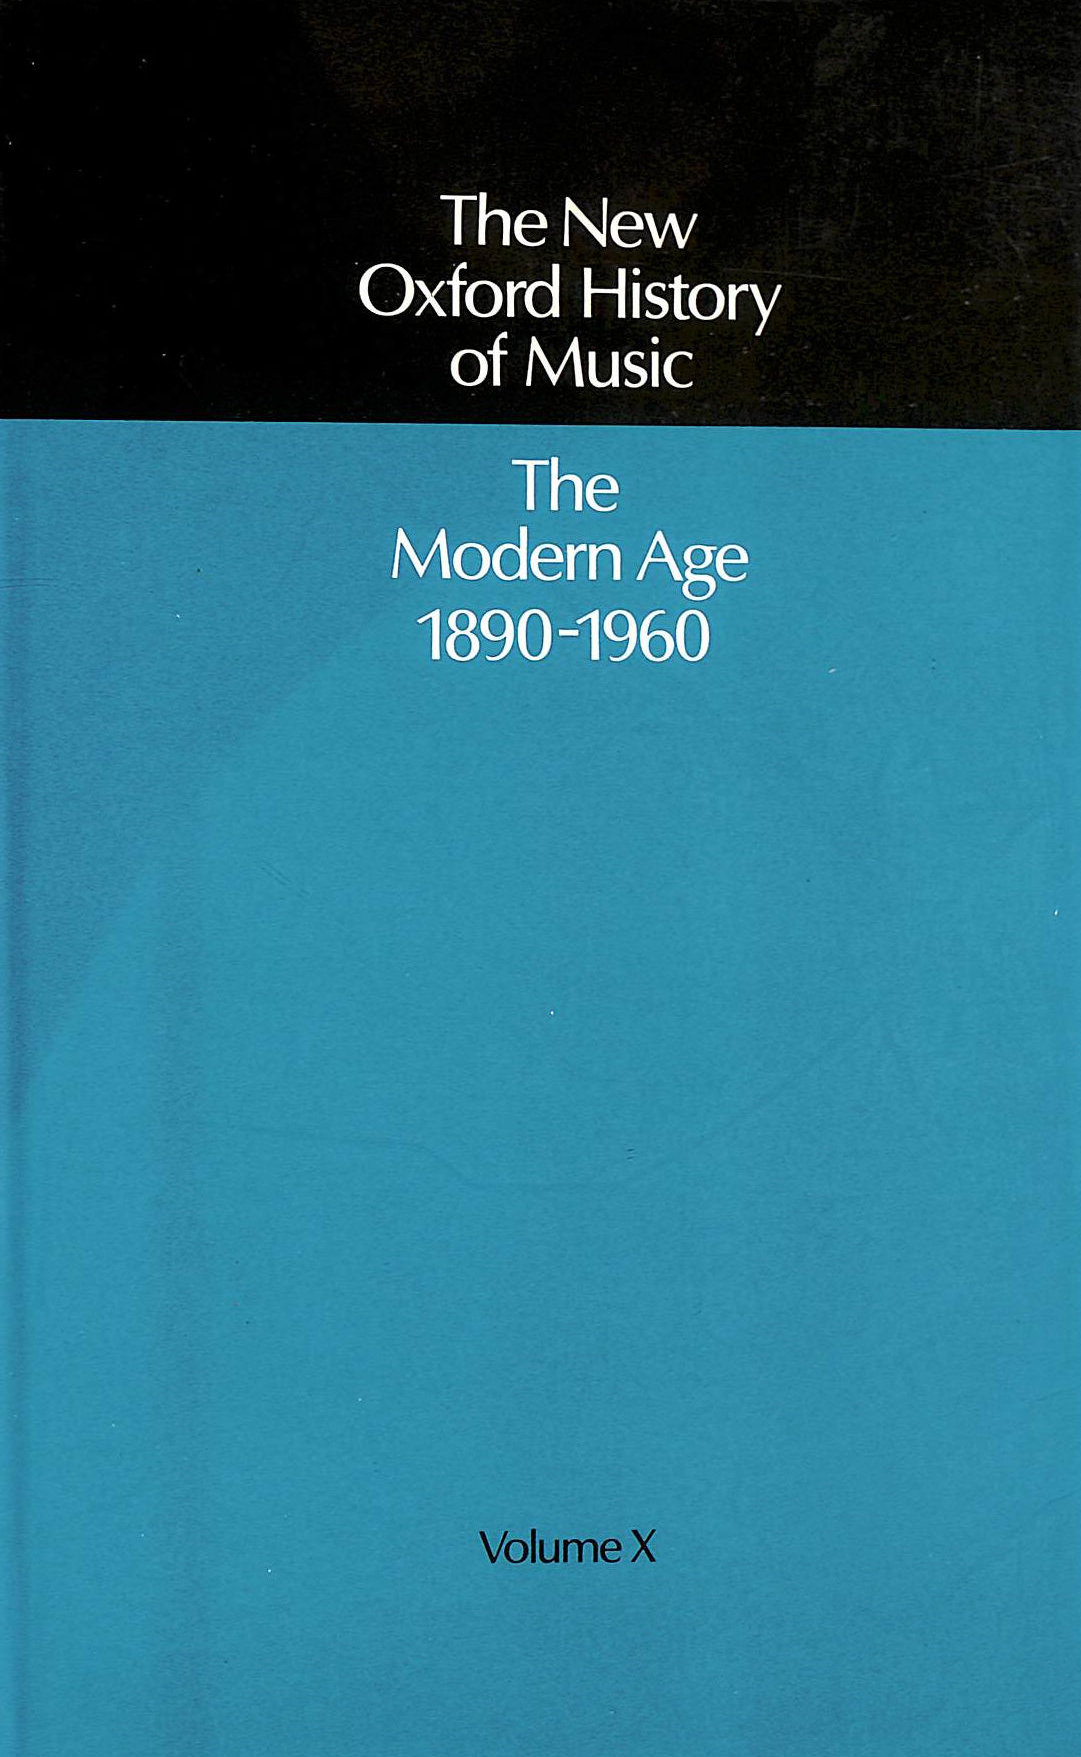 Image for The Modern Age 1890-1960 (The New Oxford History of Music - Vol 10)